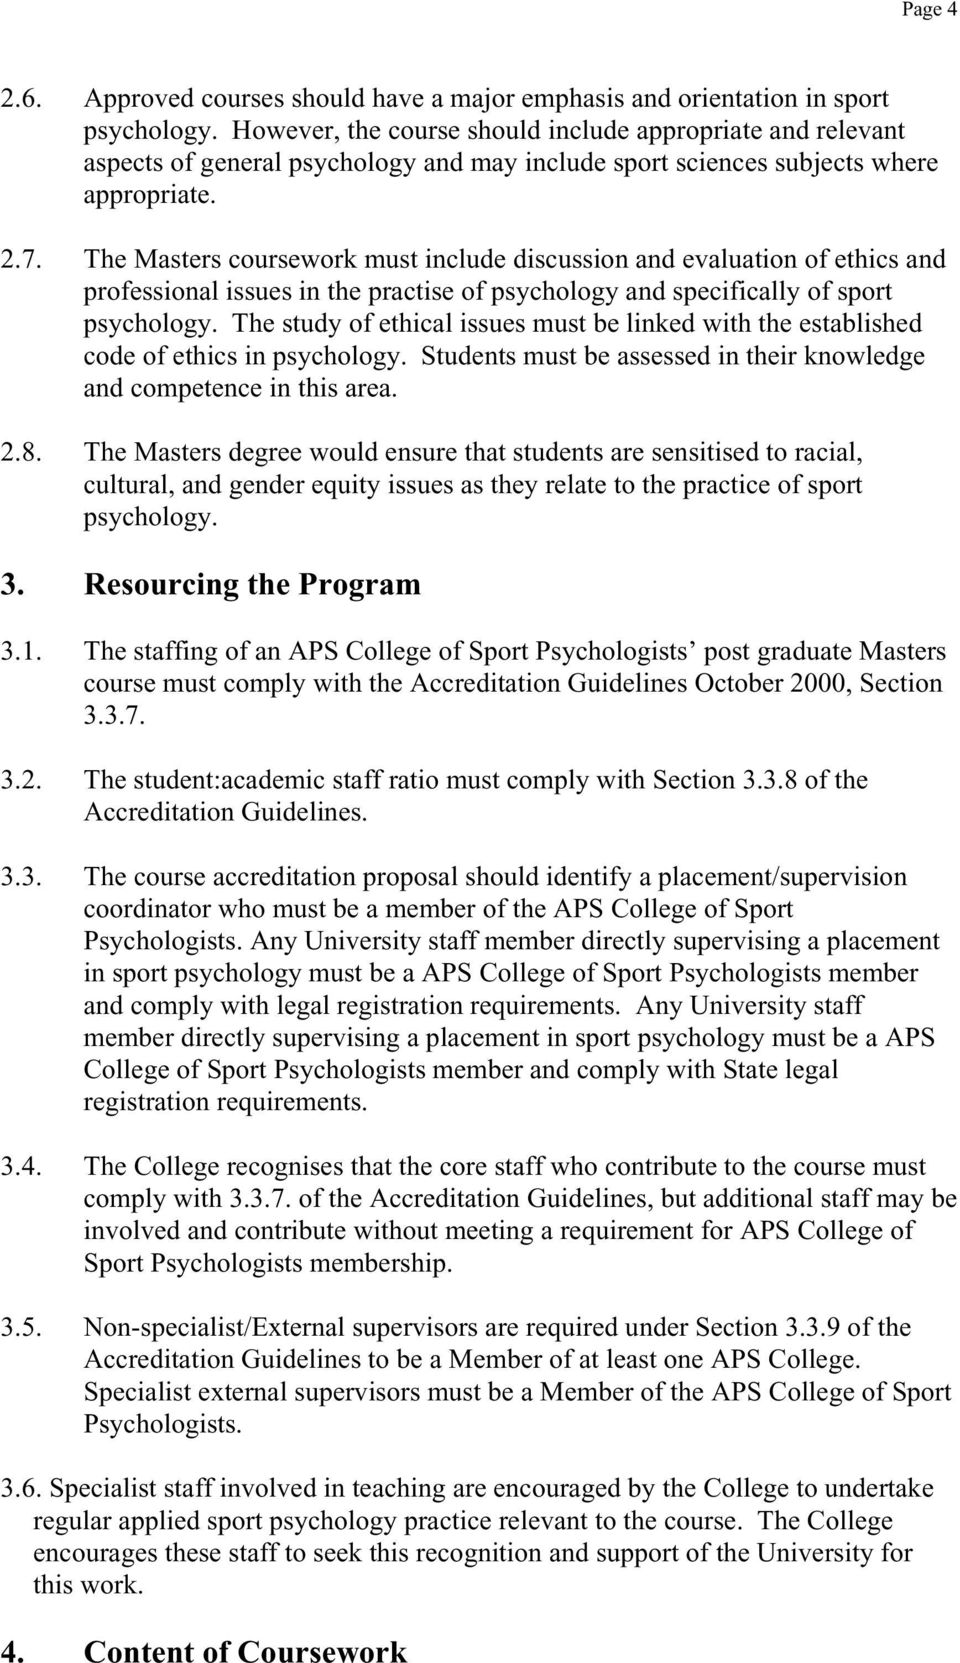 The Masters coursework must include discussion and evaluation of ethics and professional issues in the practise of psychology and specifically of sport psychology.